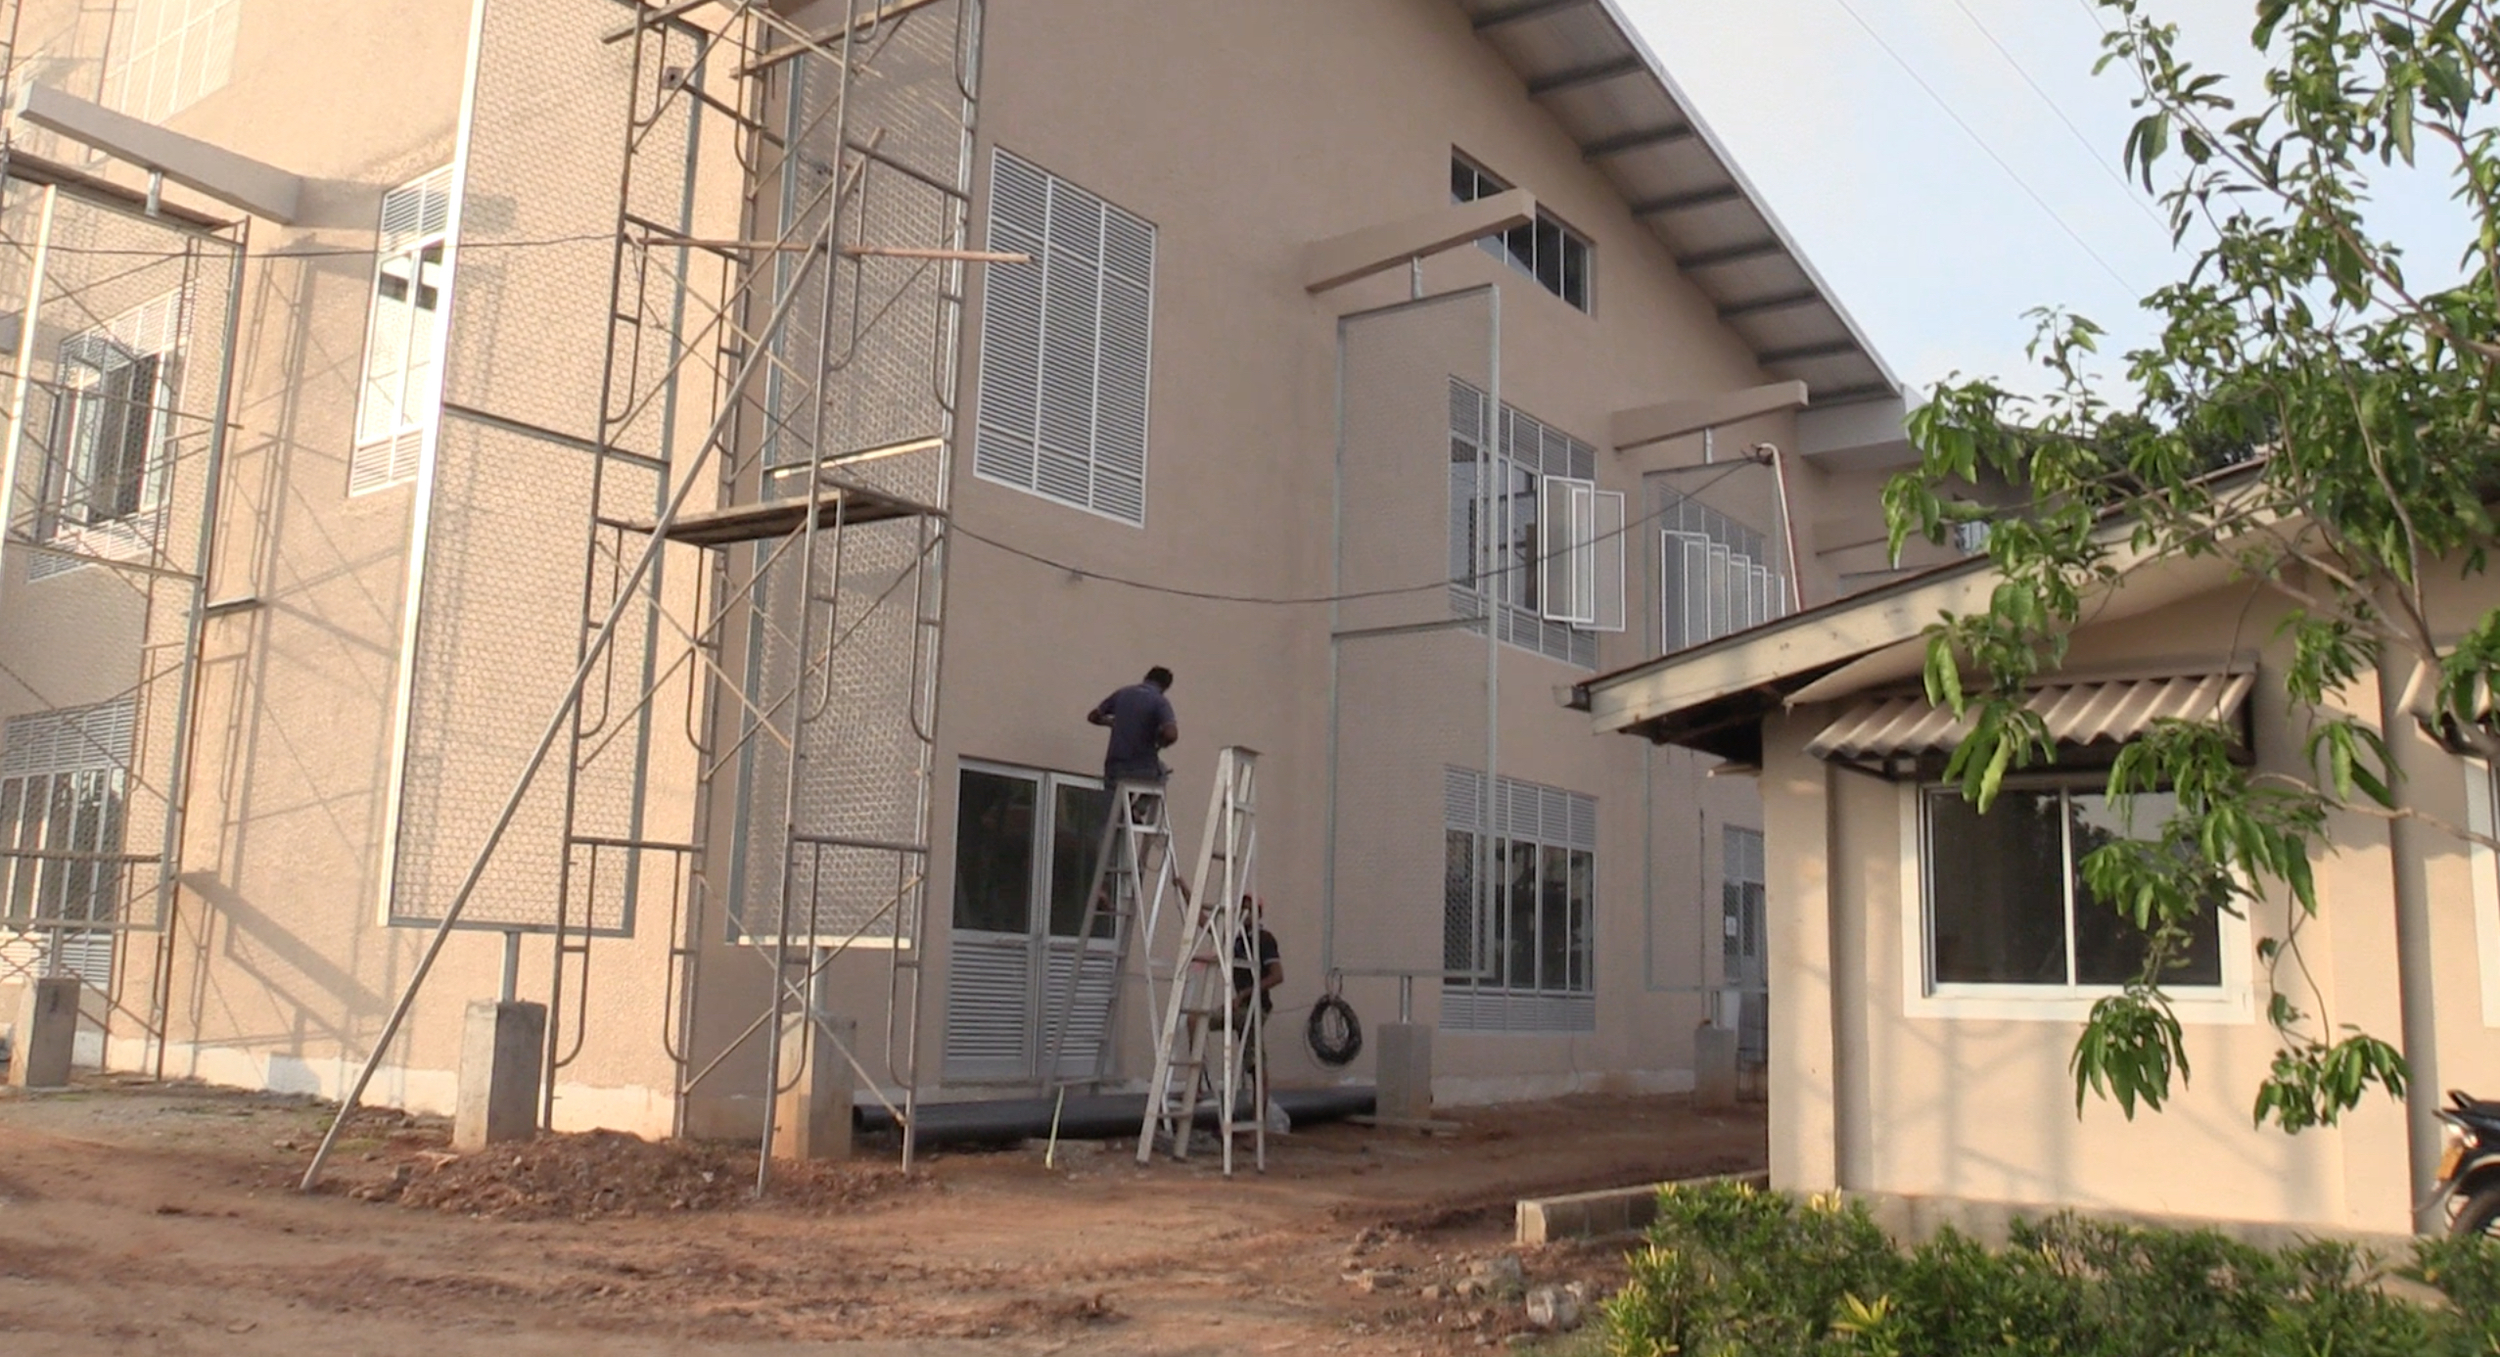 New classrooms nearing completion